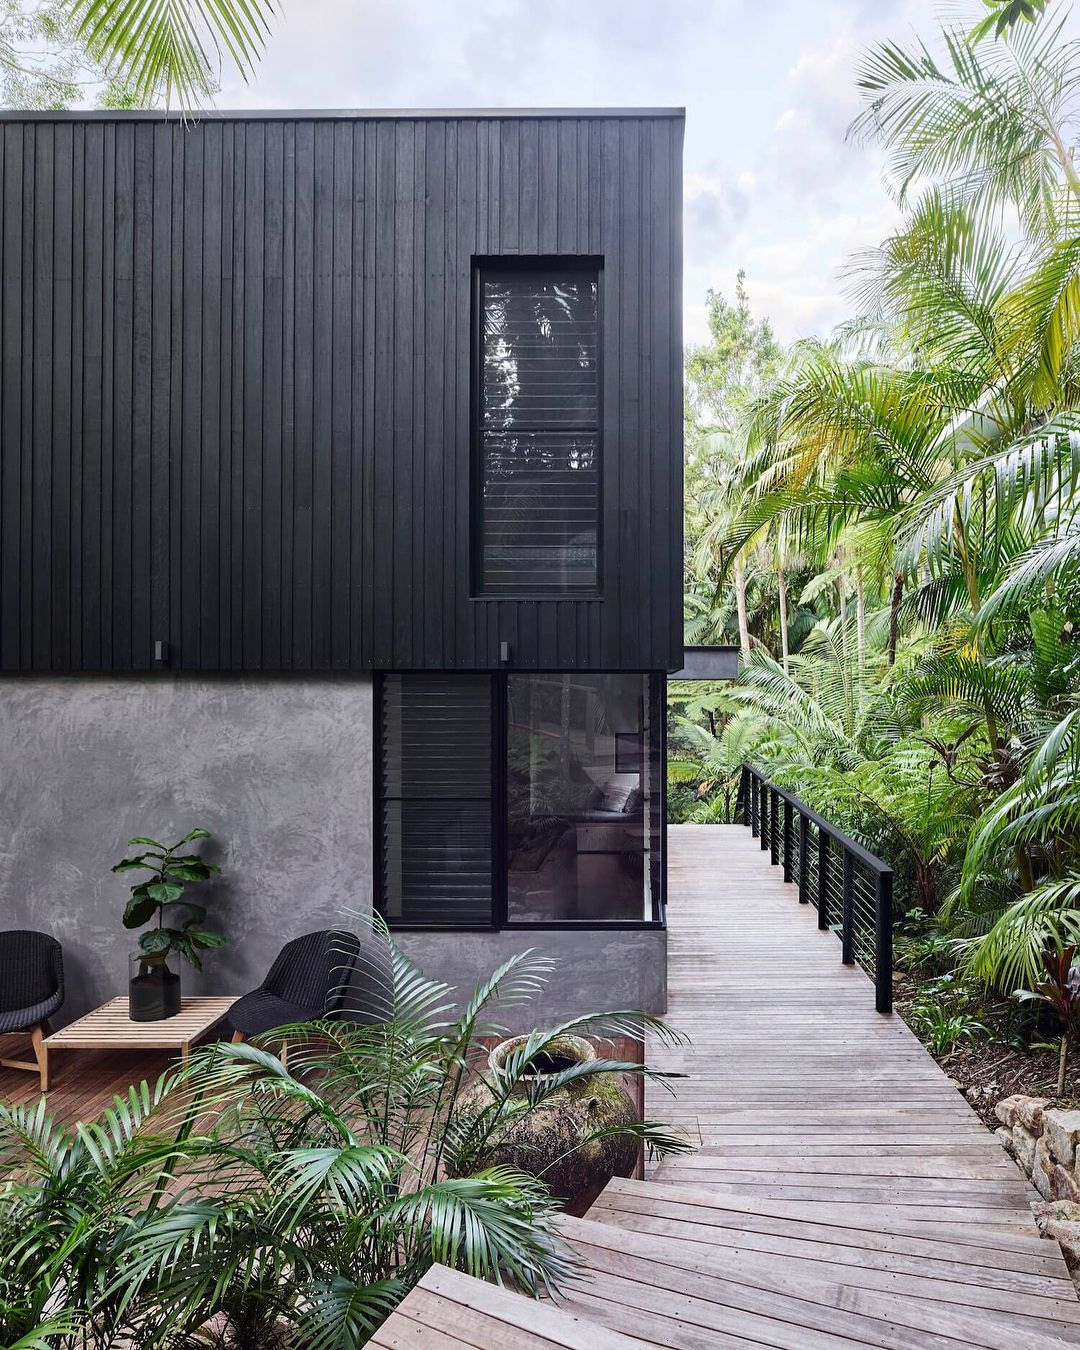 Home Design Ideas Australia: Gallery Of RLC Residence By Warren Foster Architects